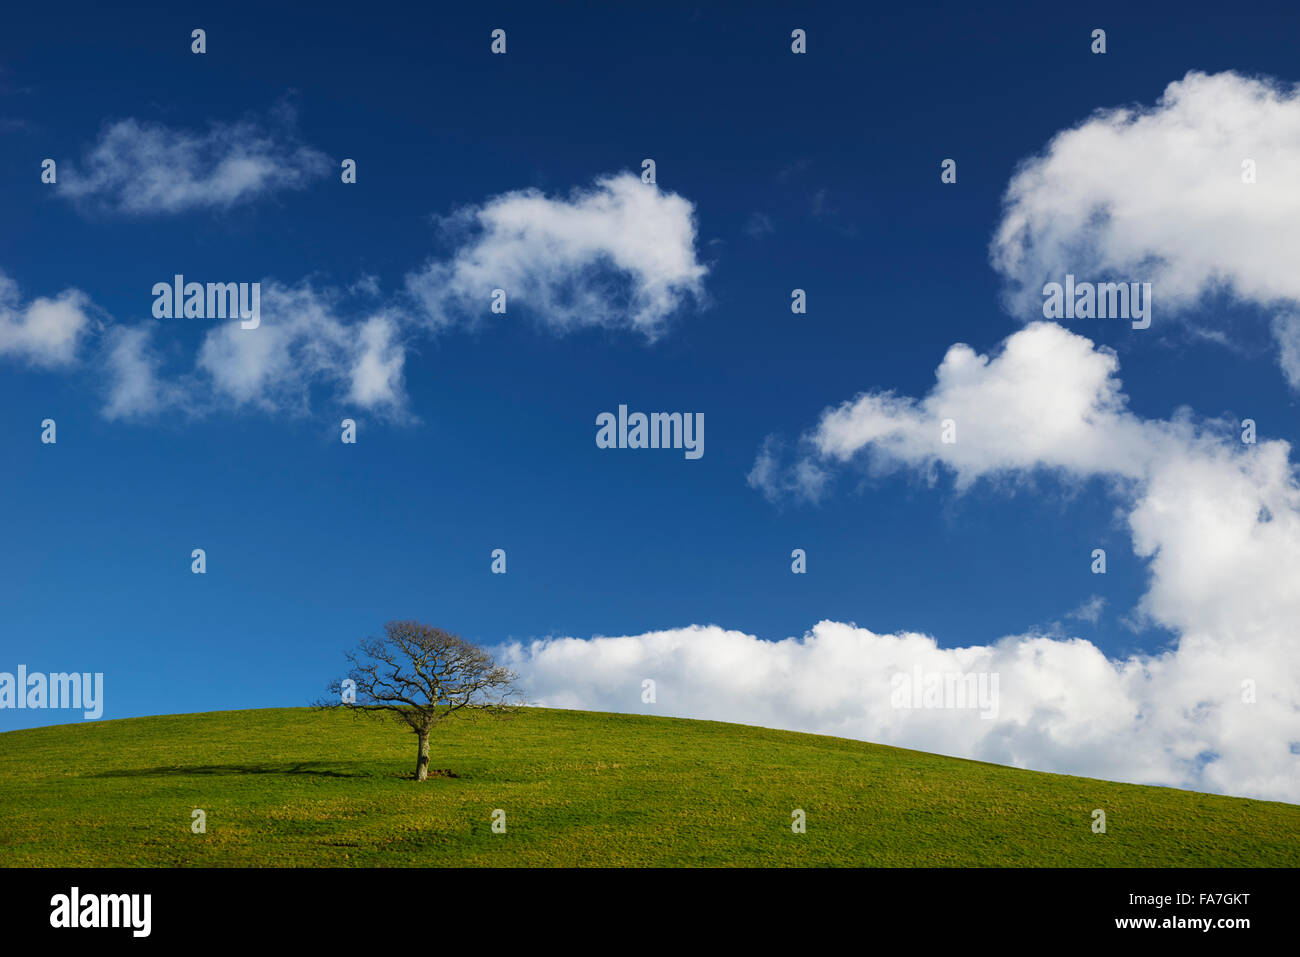 A single tree on a hillside Stock Photo